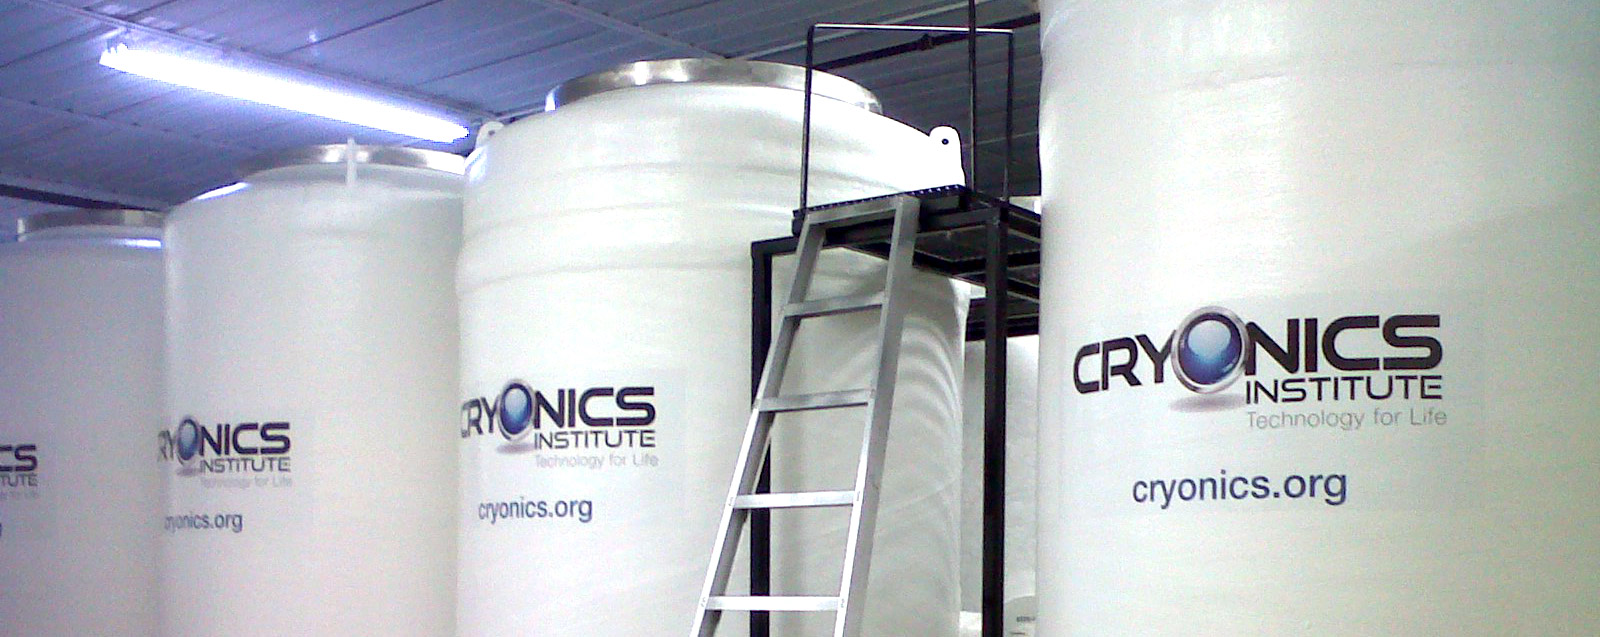 an analysis of cryonics the practice of freezing human bodies in the hope that one day to revive and